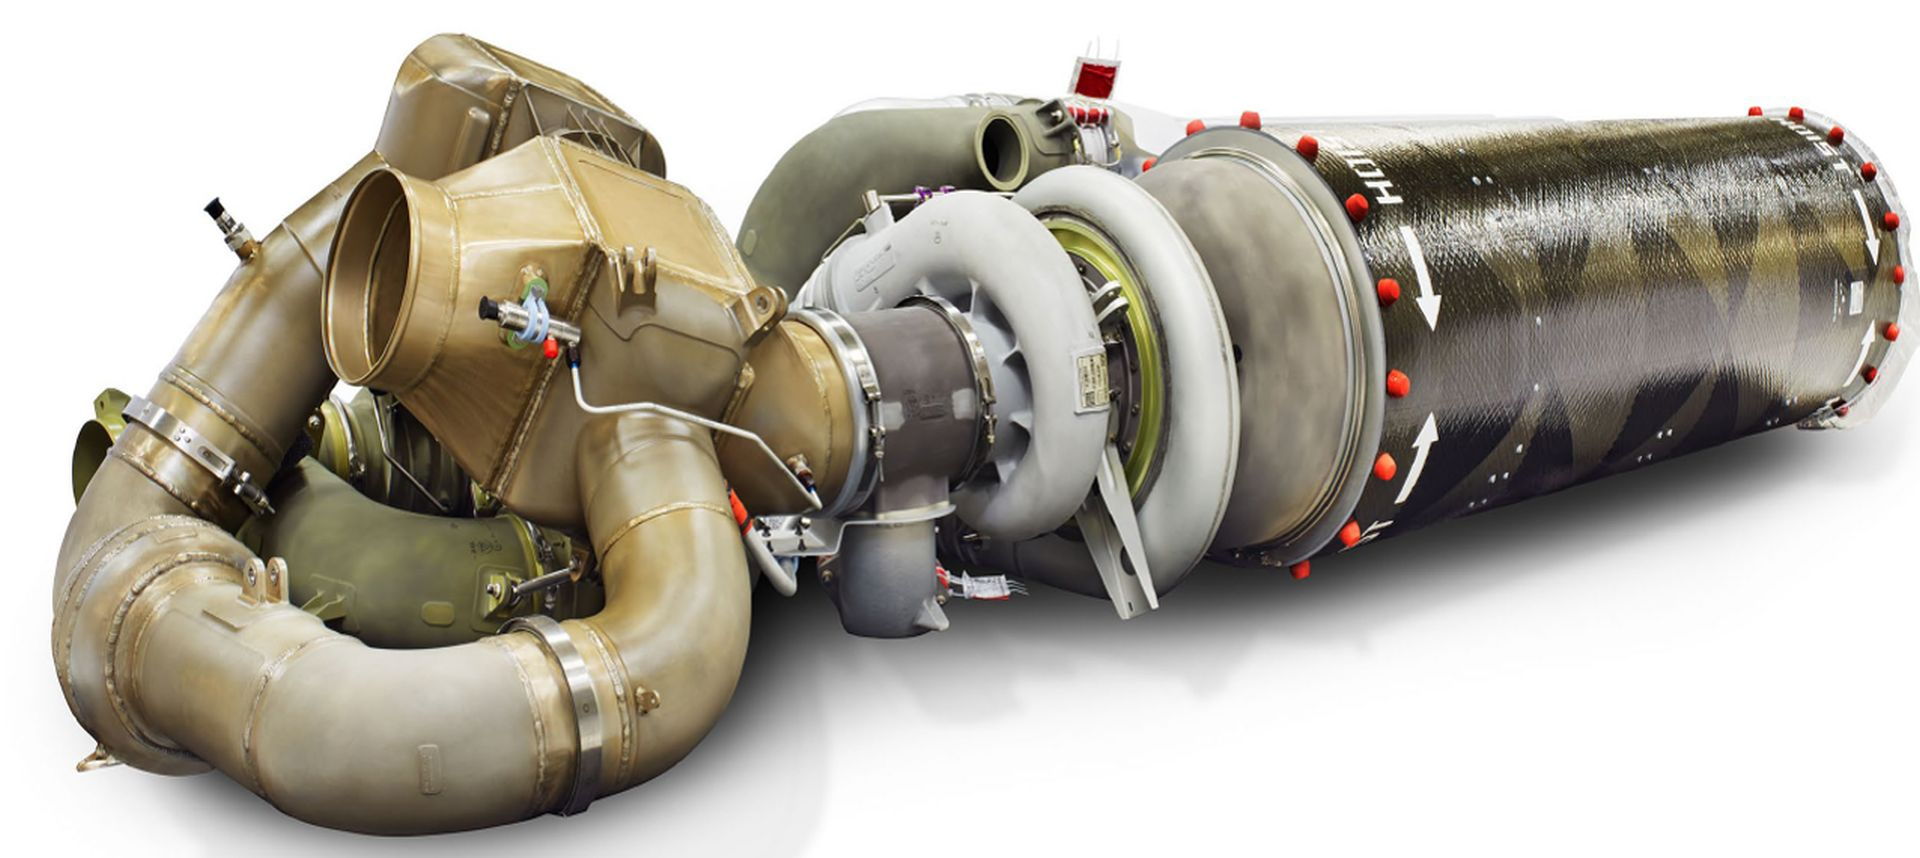 Extension of Honeywell component services for Airbus A350 fleets in Asia Pacific